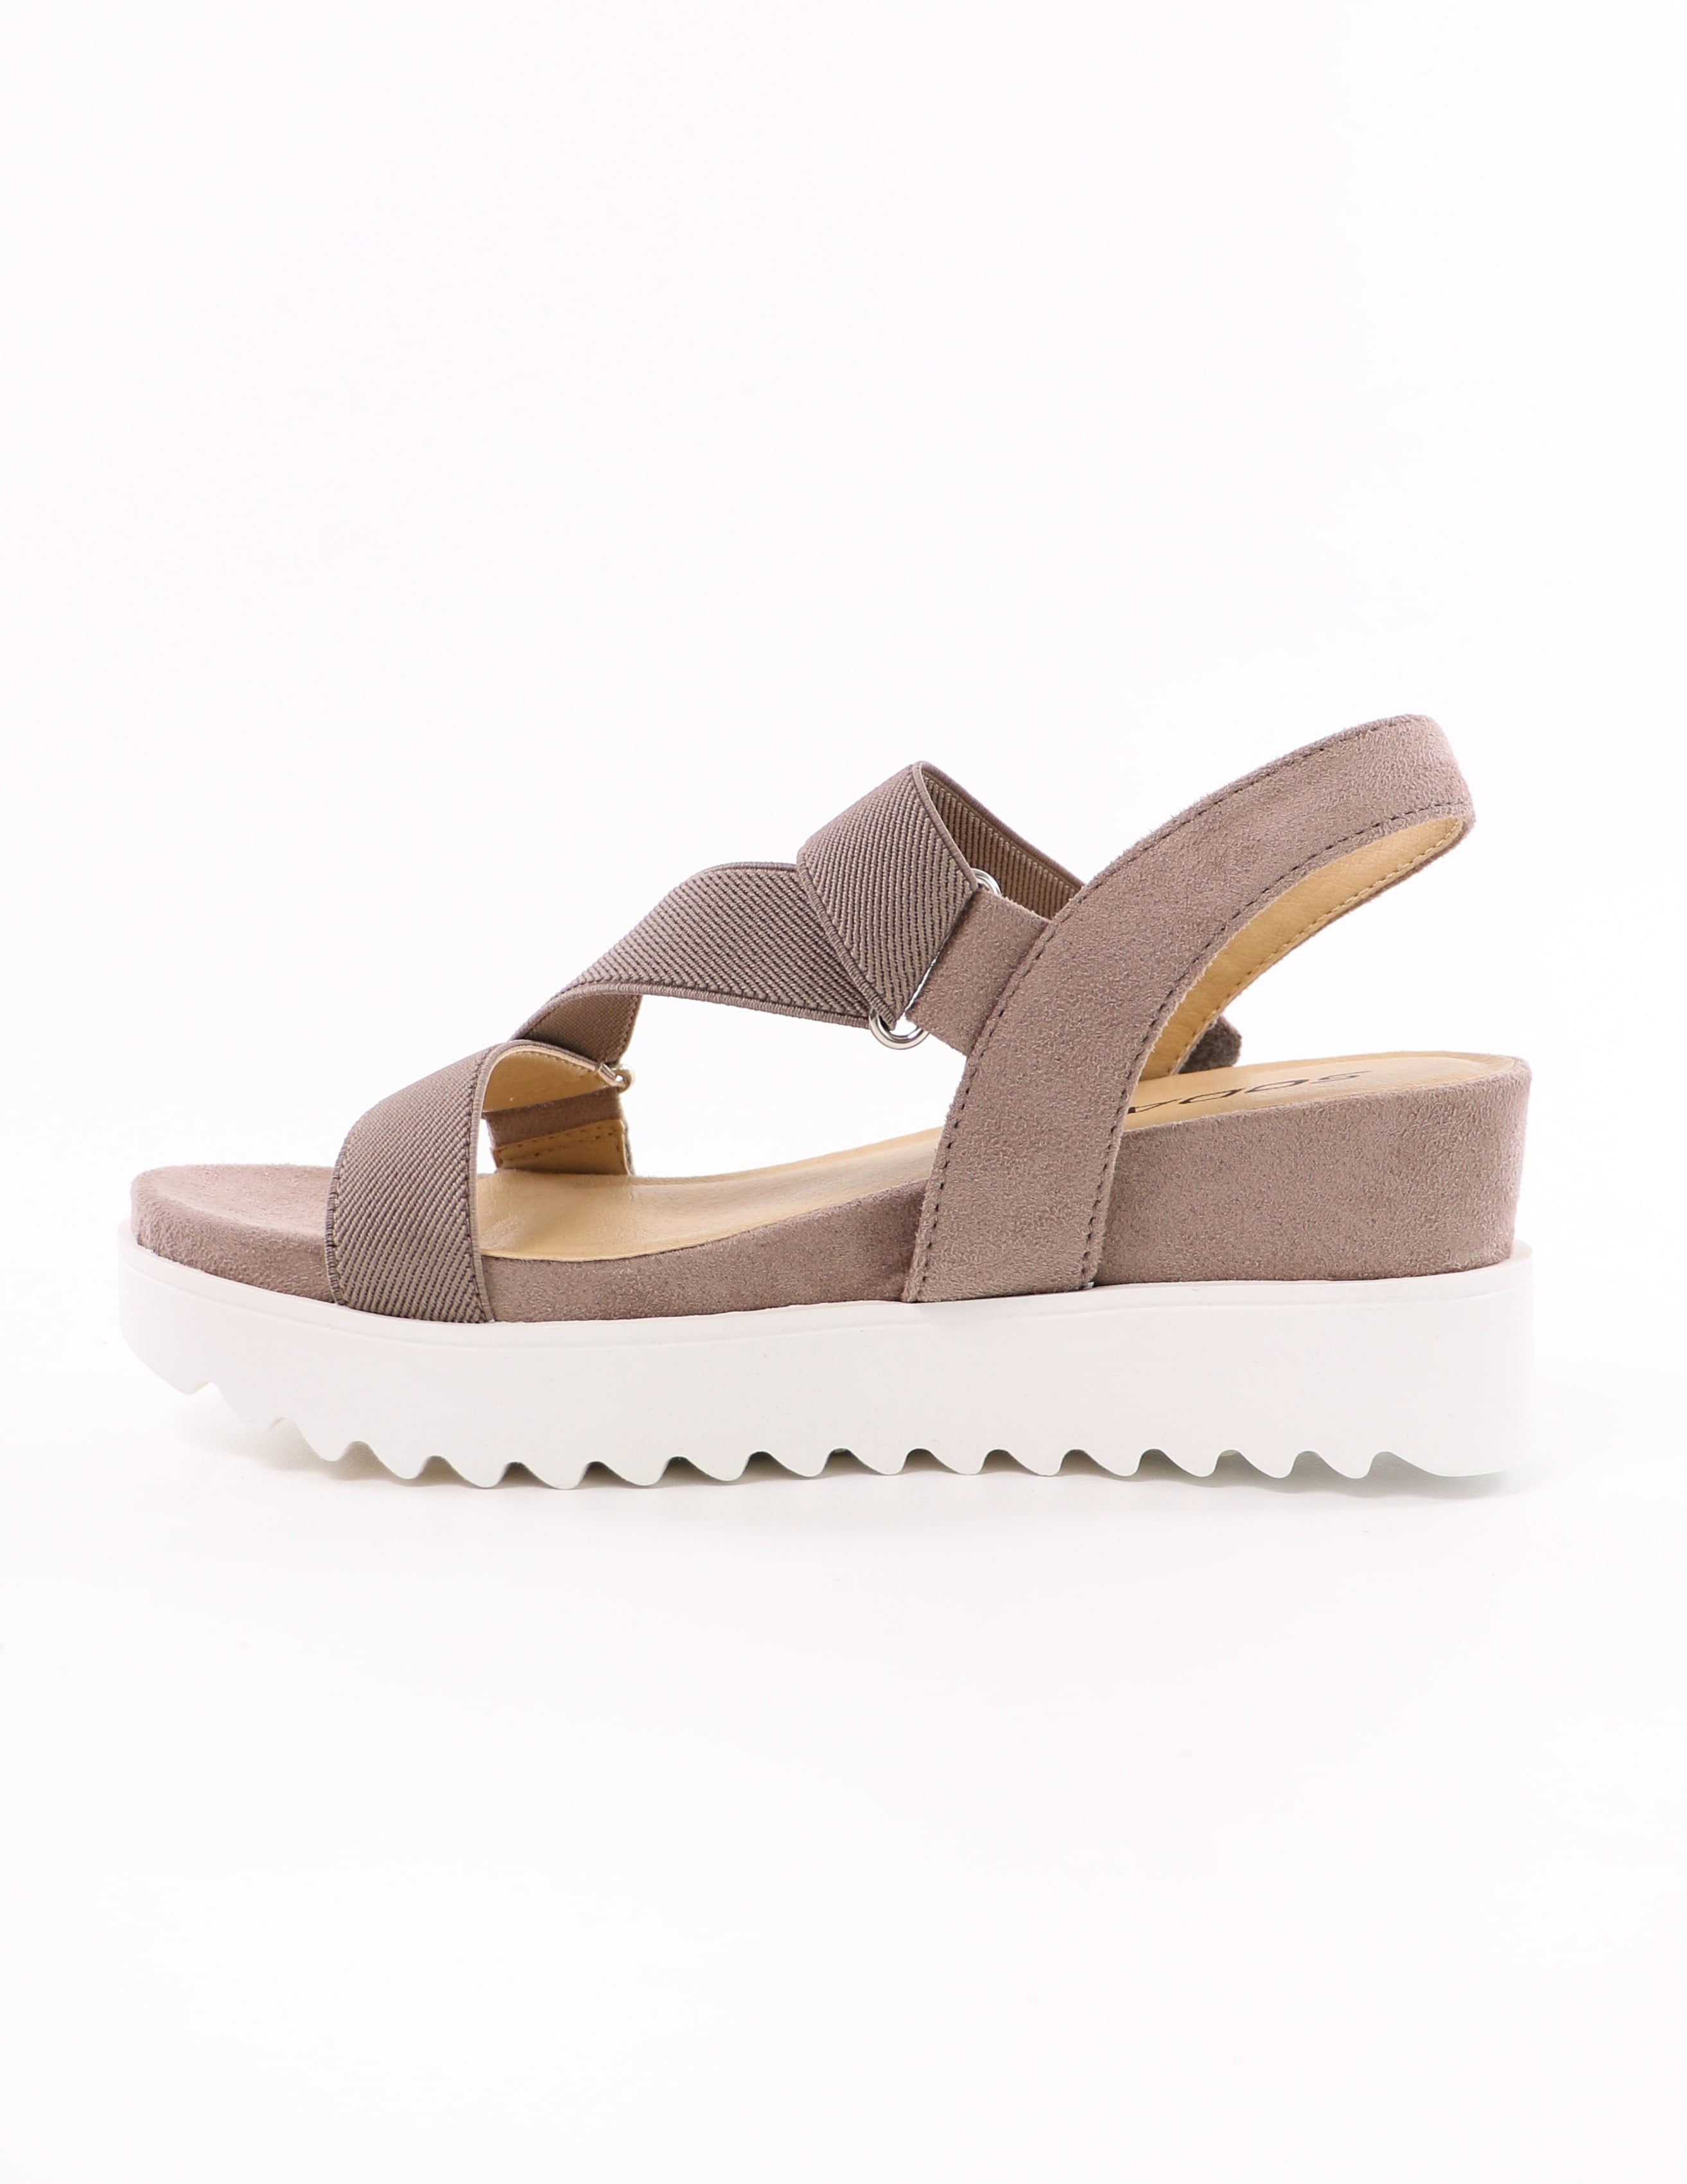 side of the taupe strappy go lucky sporty platform sandals with velcro strap and chunky white sole - elle bleu